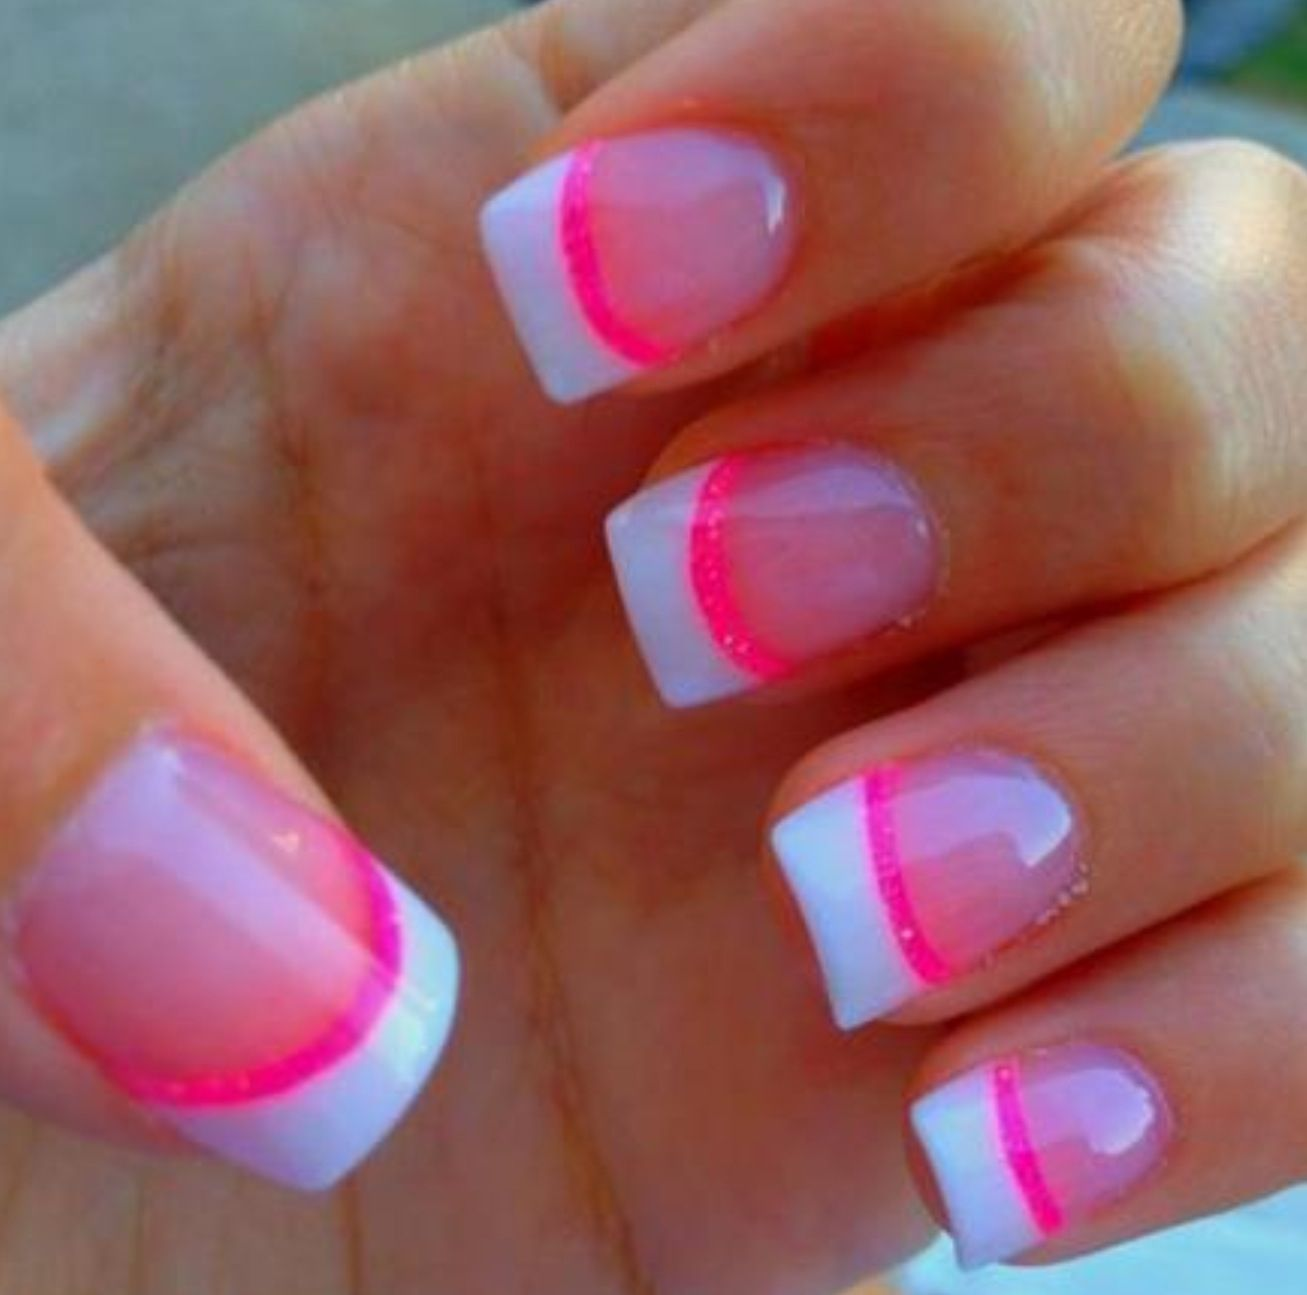 Neon French nails | Nails | Pinterest | French nails, Neon and Make up